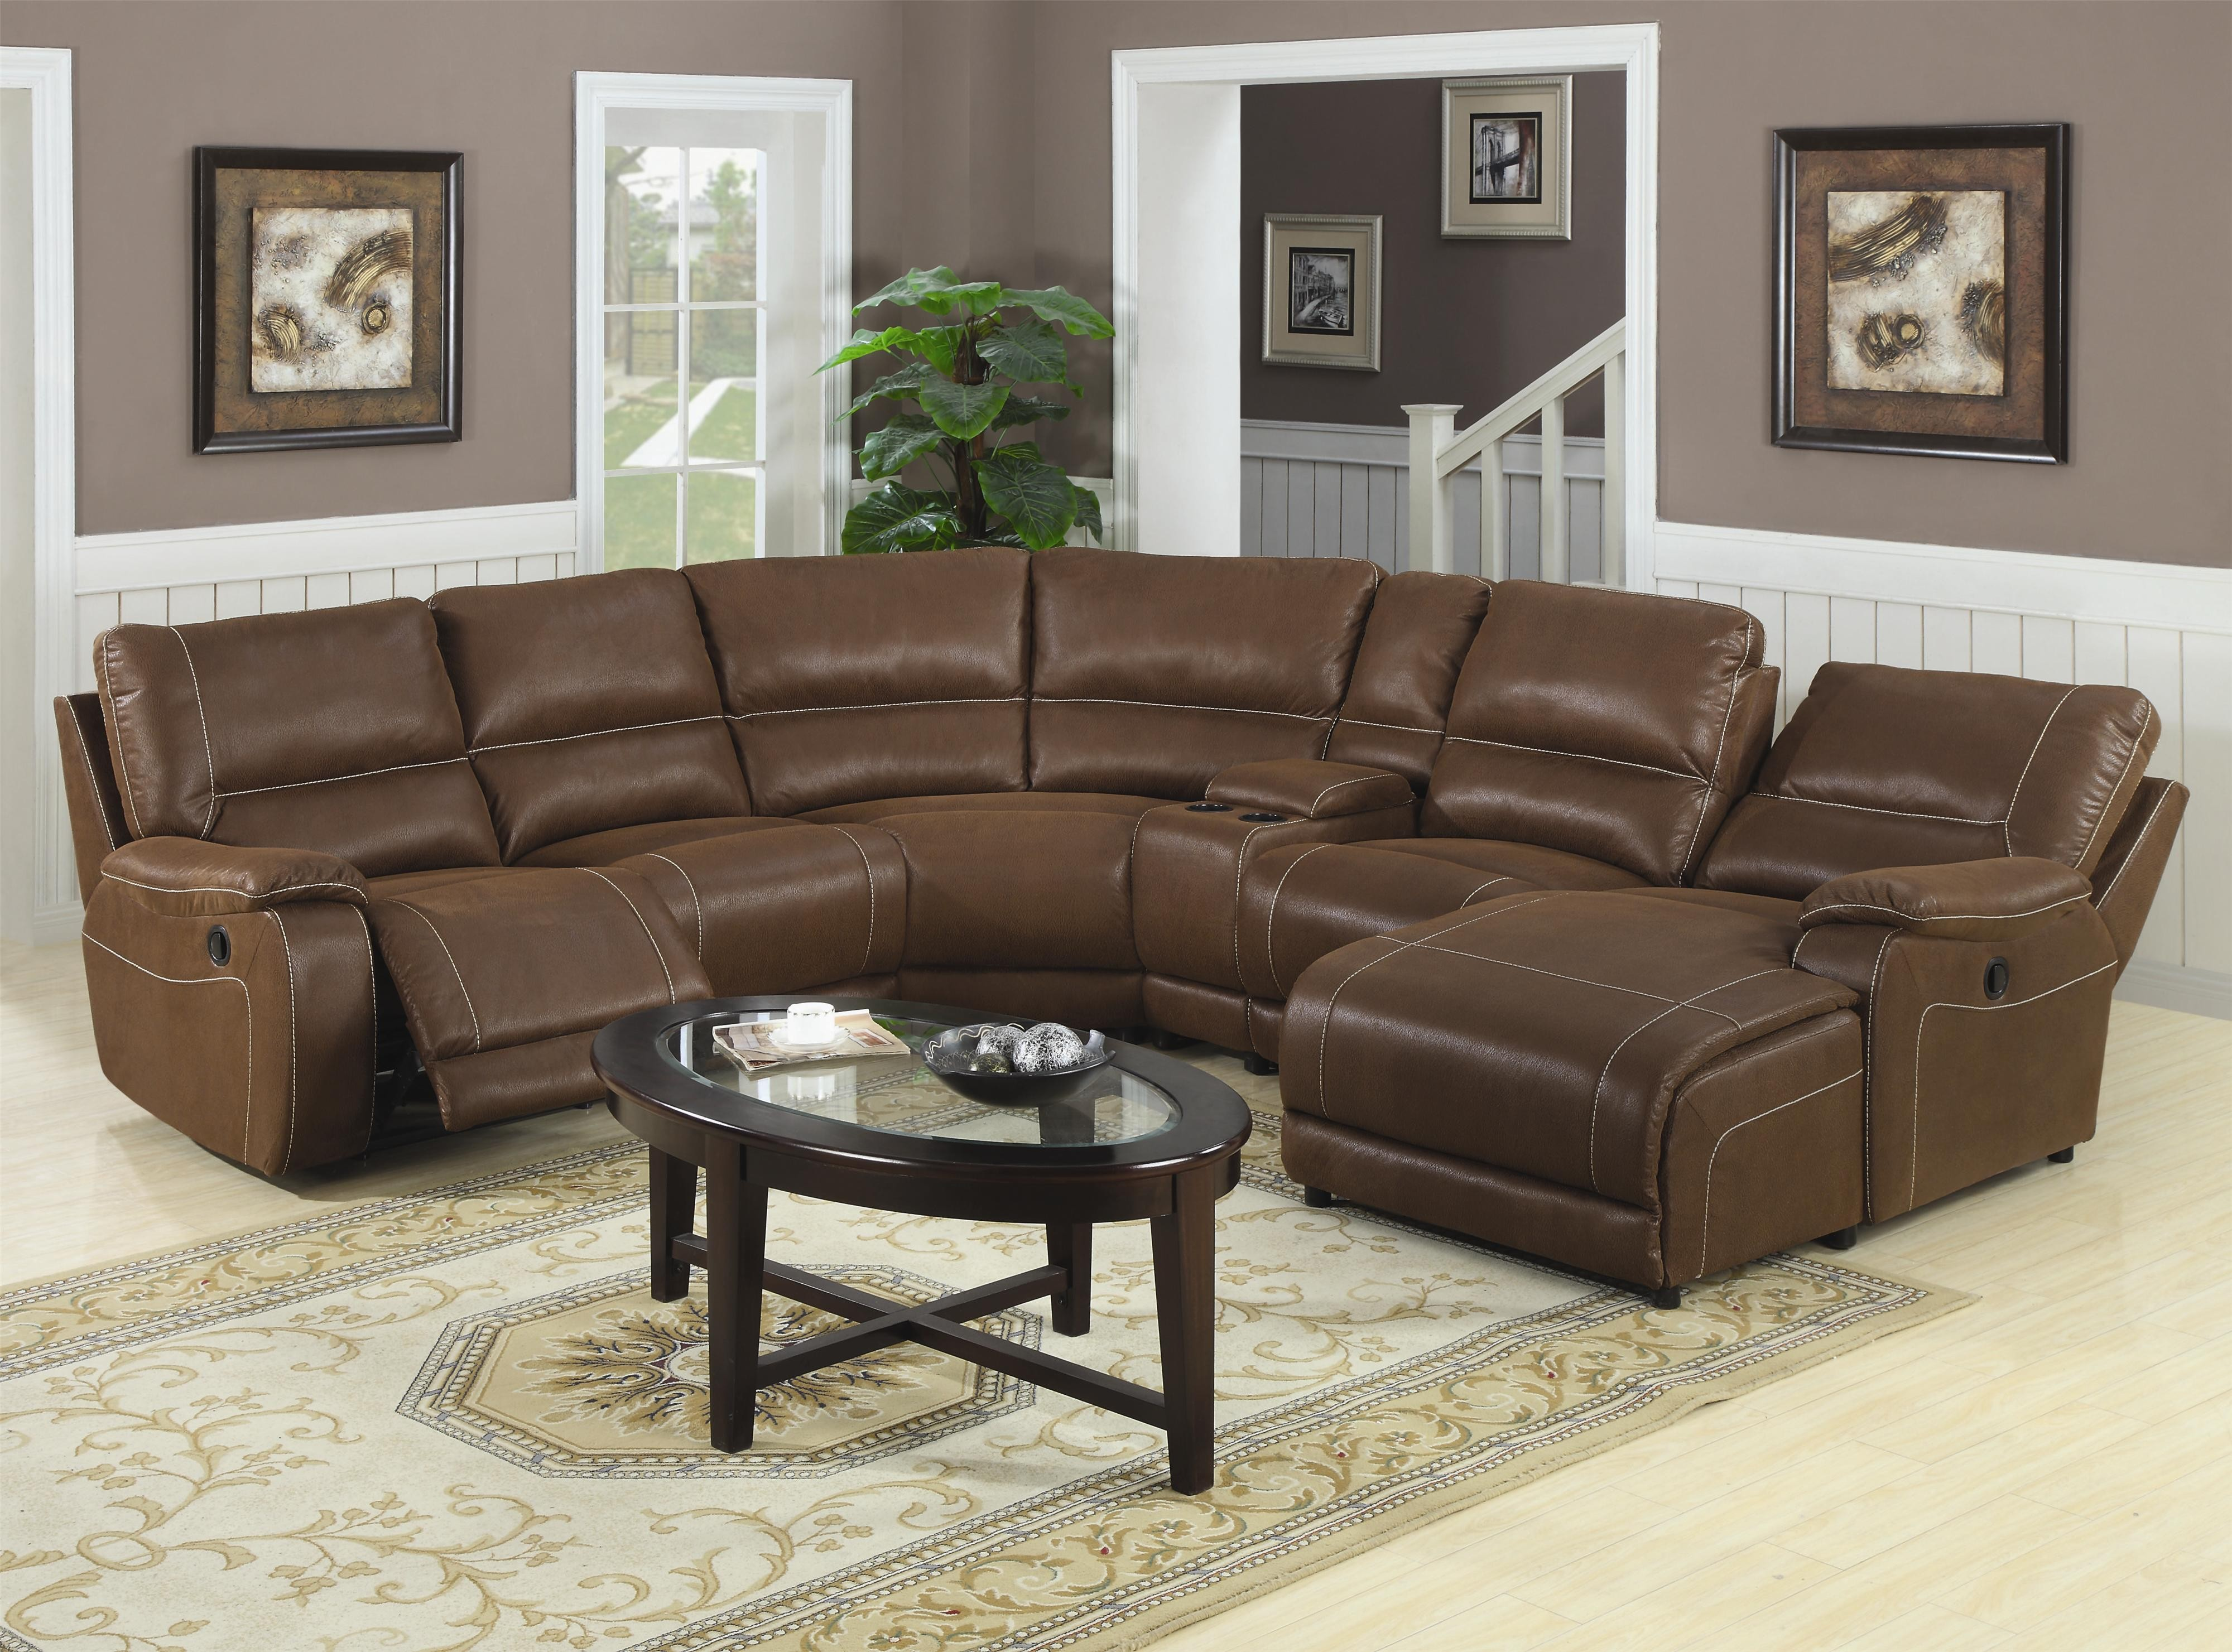 Sectional Reclining Sofas | Recliner Sectional Sofas Small Space | Leather Sectional  Sofas with Recliners and